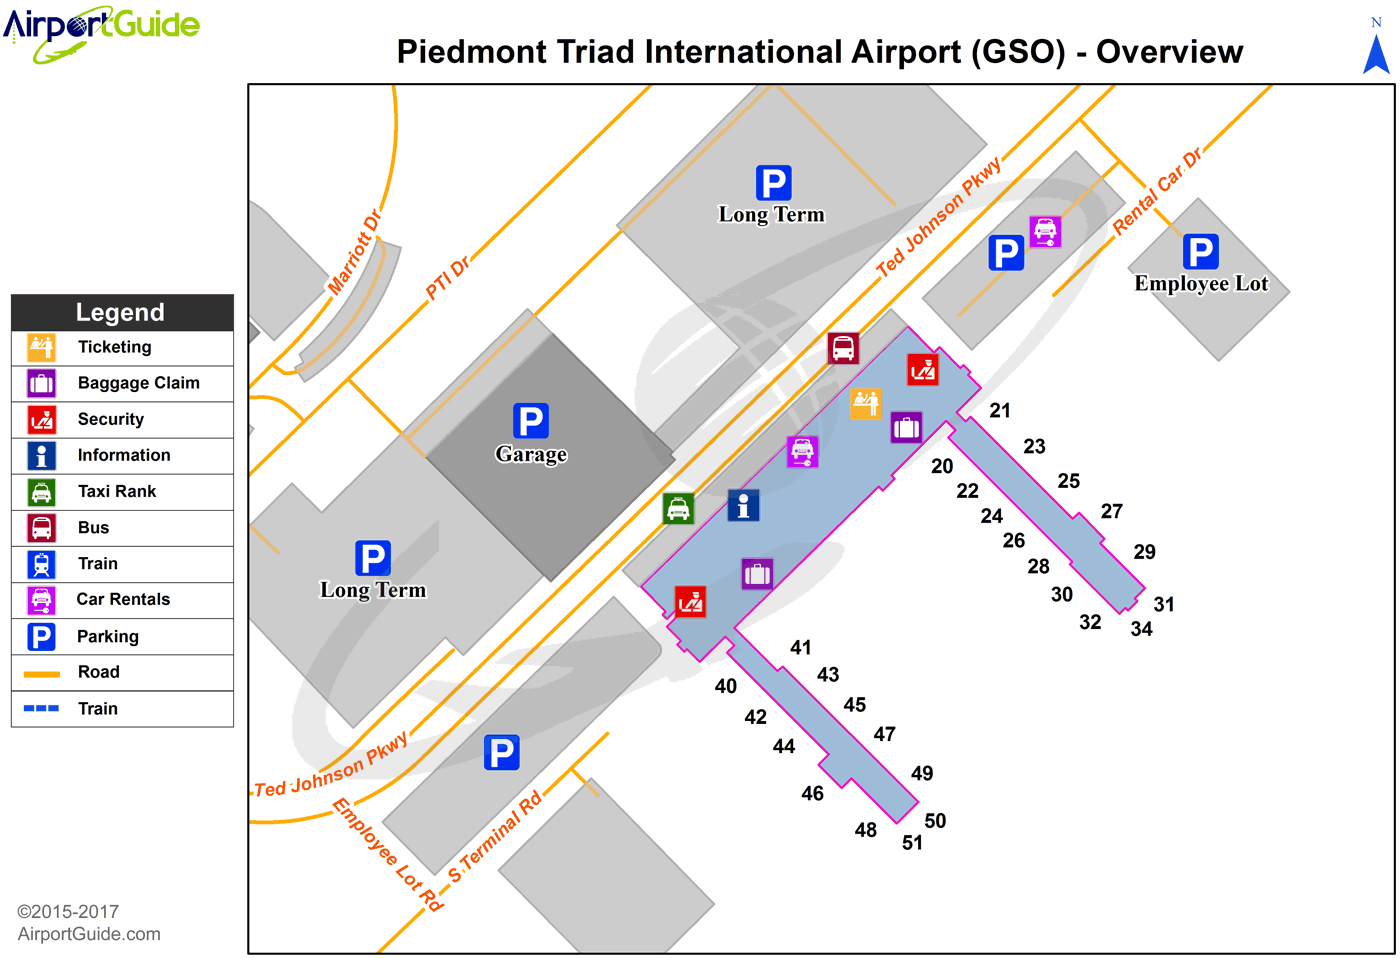 Greensboro - Piedmont Triad International (GSO) Airport Terminal Map - Overview